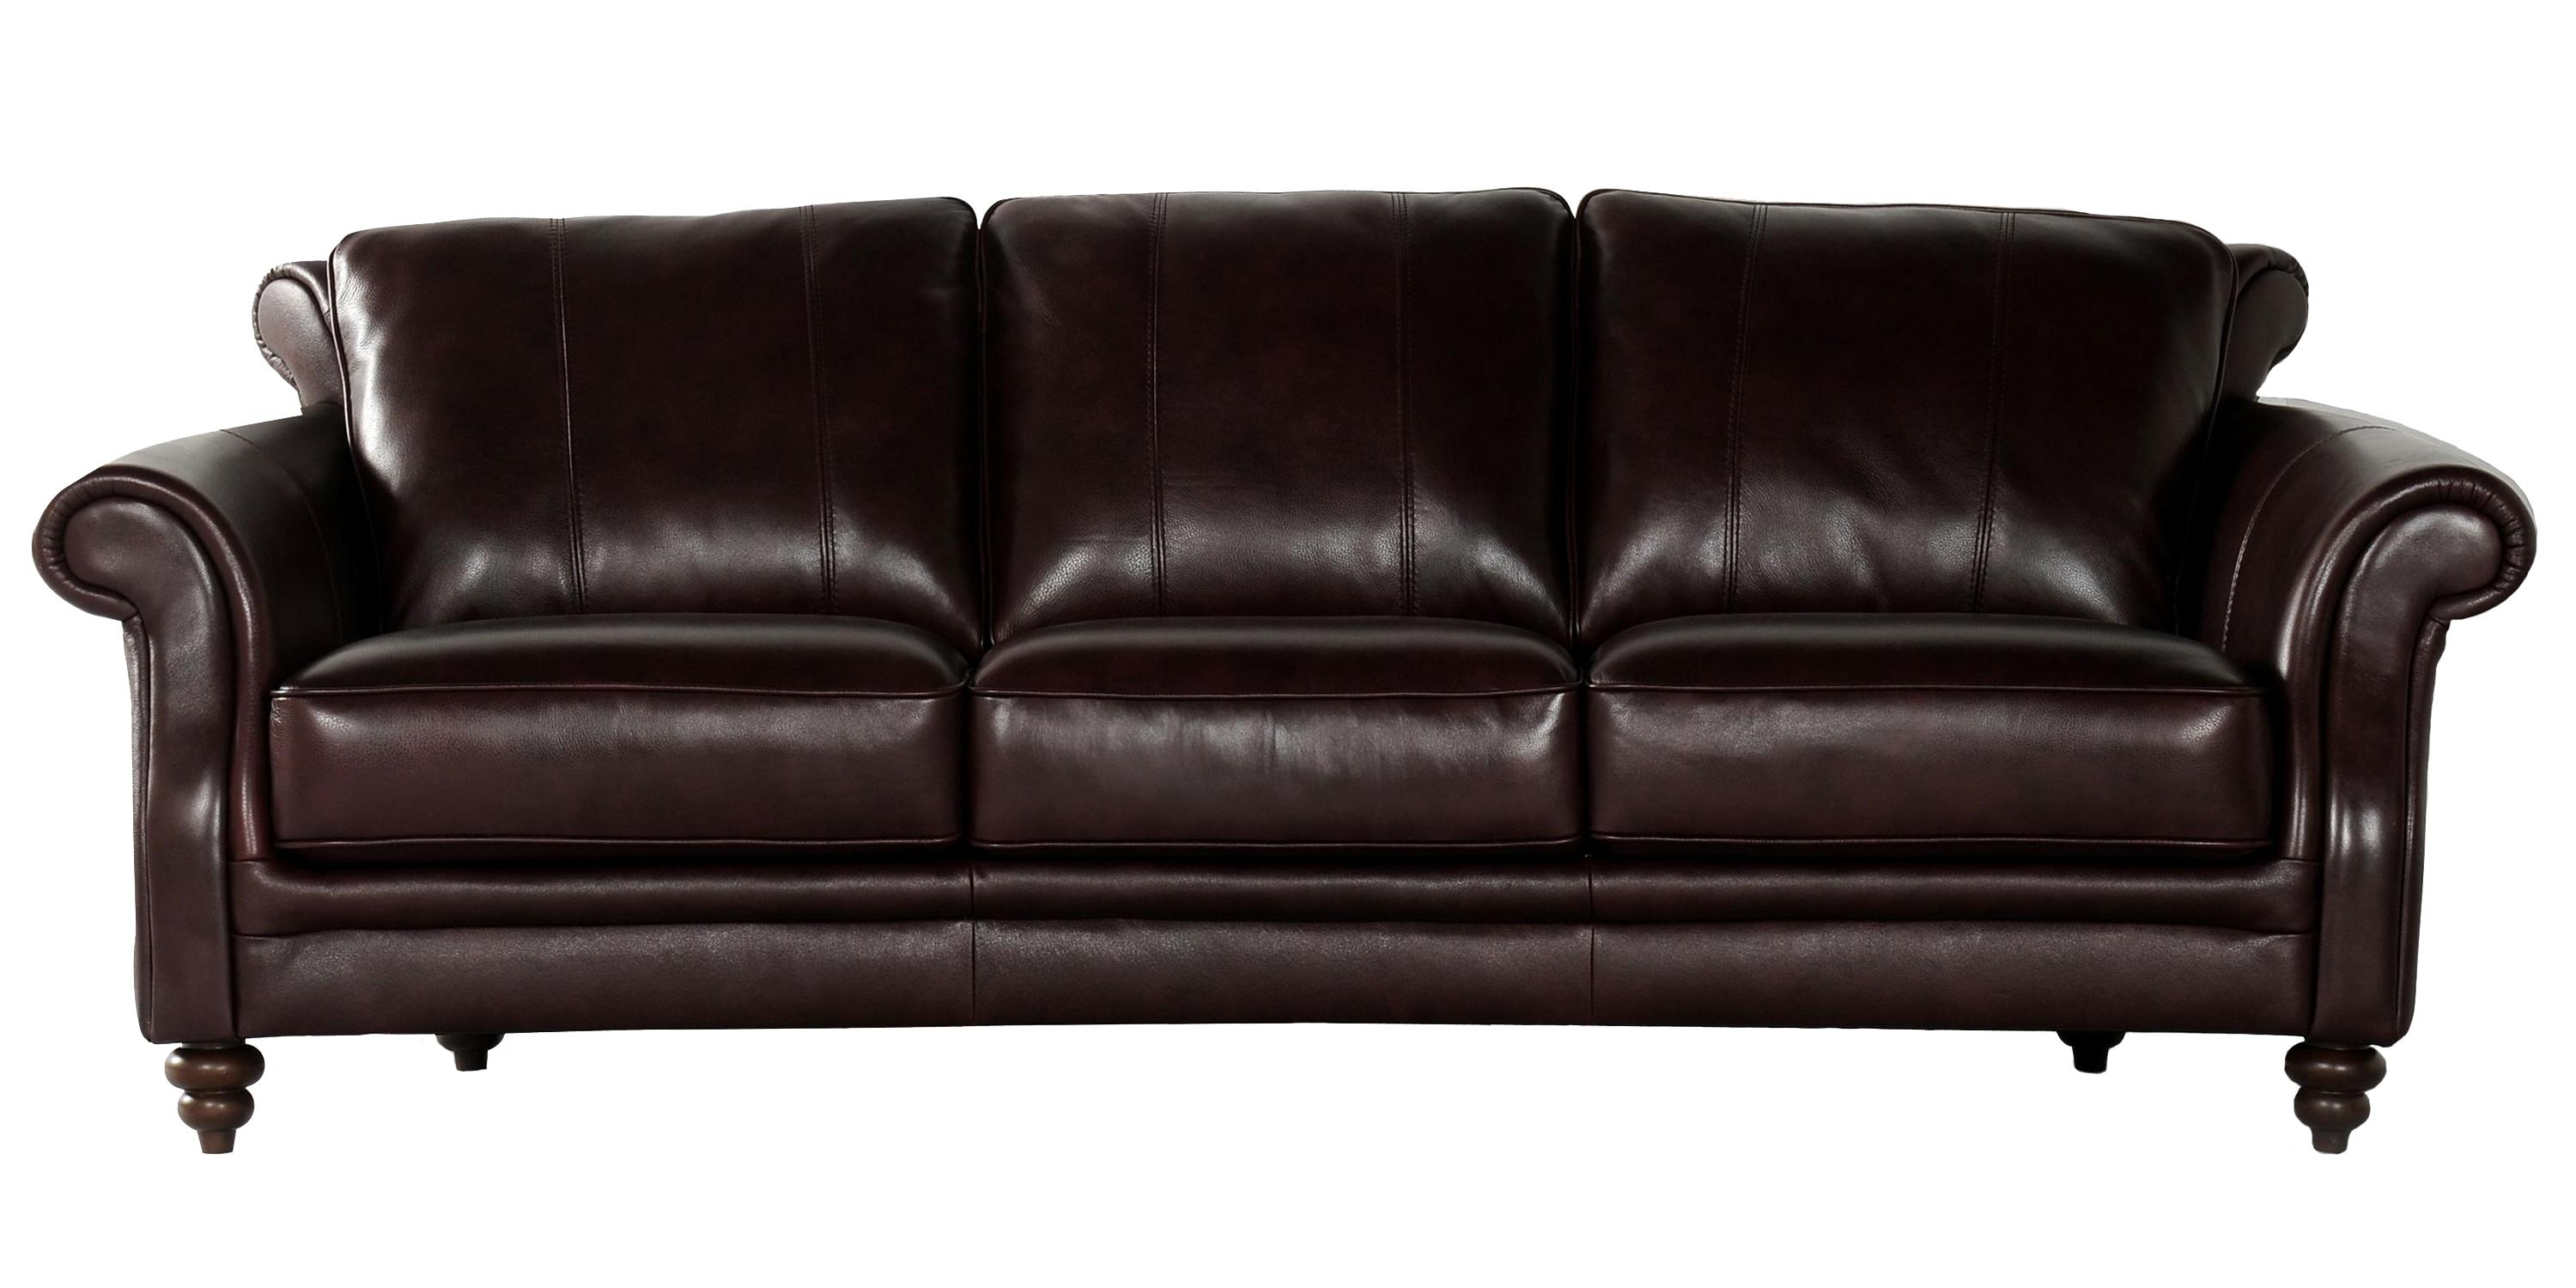 Violino Leather Sofa hmmi